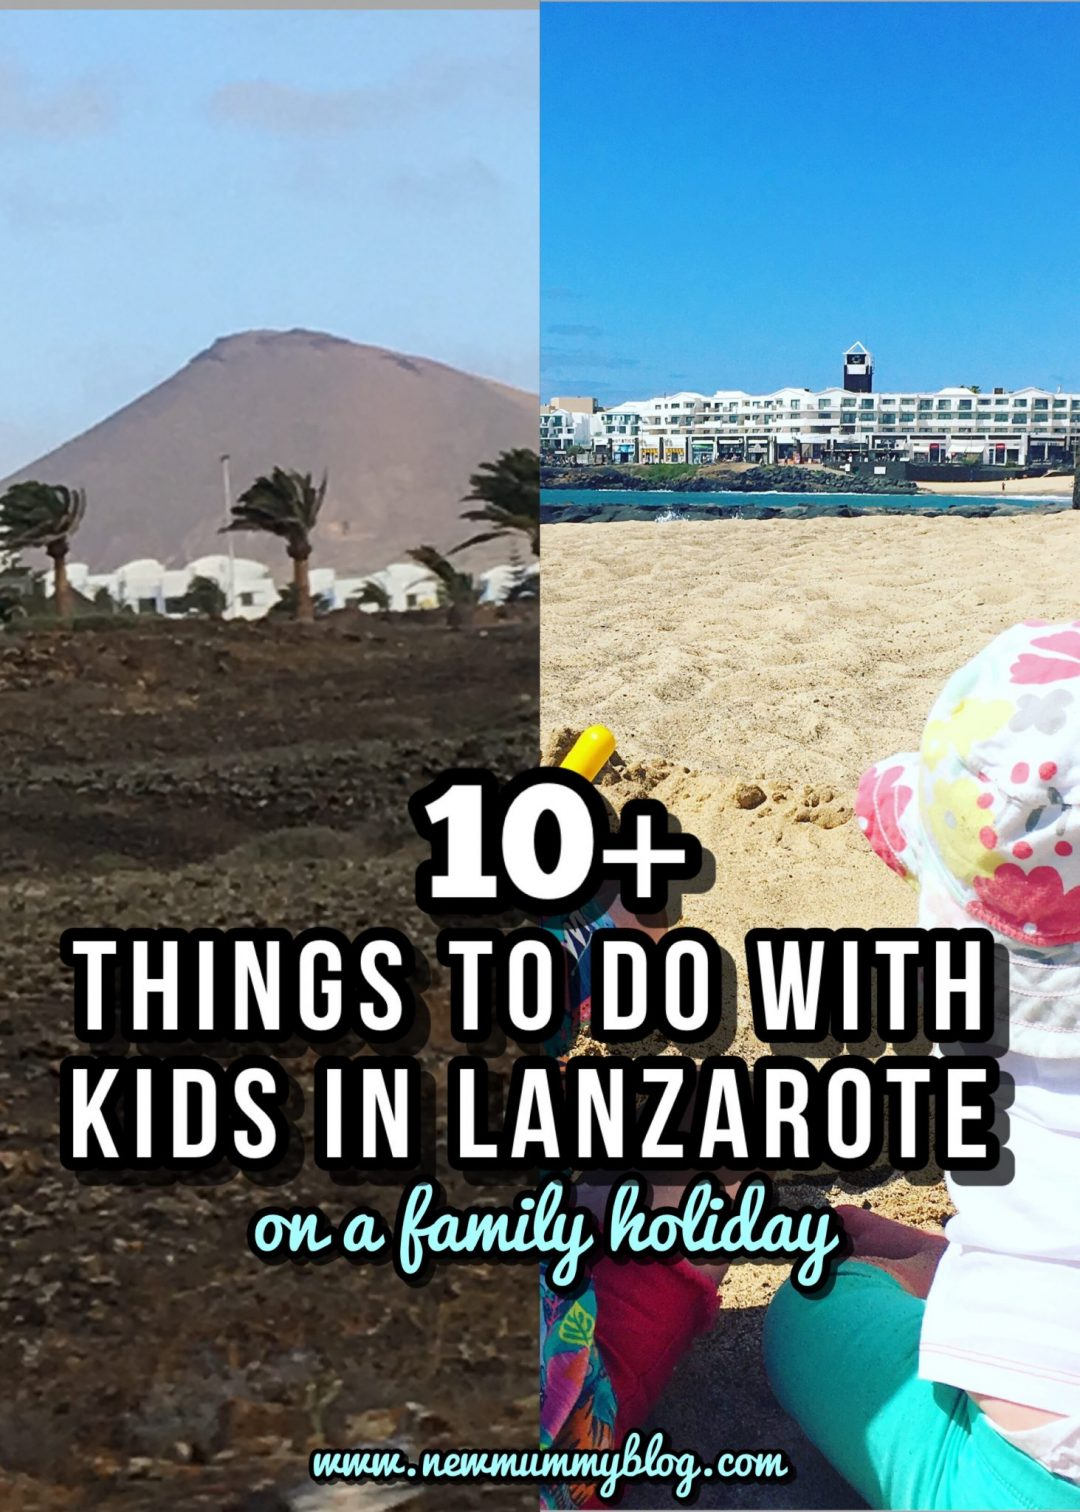 10+ things to do in Lanzarote with kids on a family holiday - holiday inspiration and fun days out. Kids at the beach in Costa Tiguise and volcanos